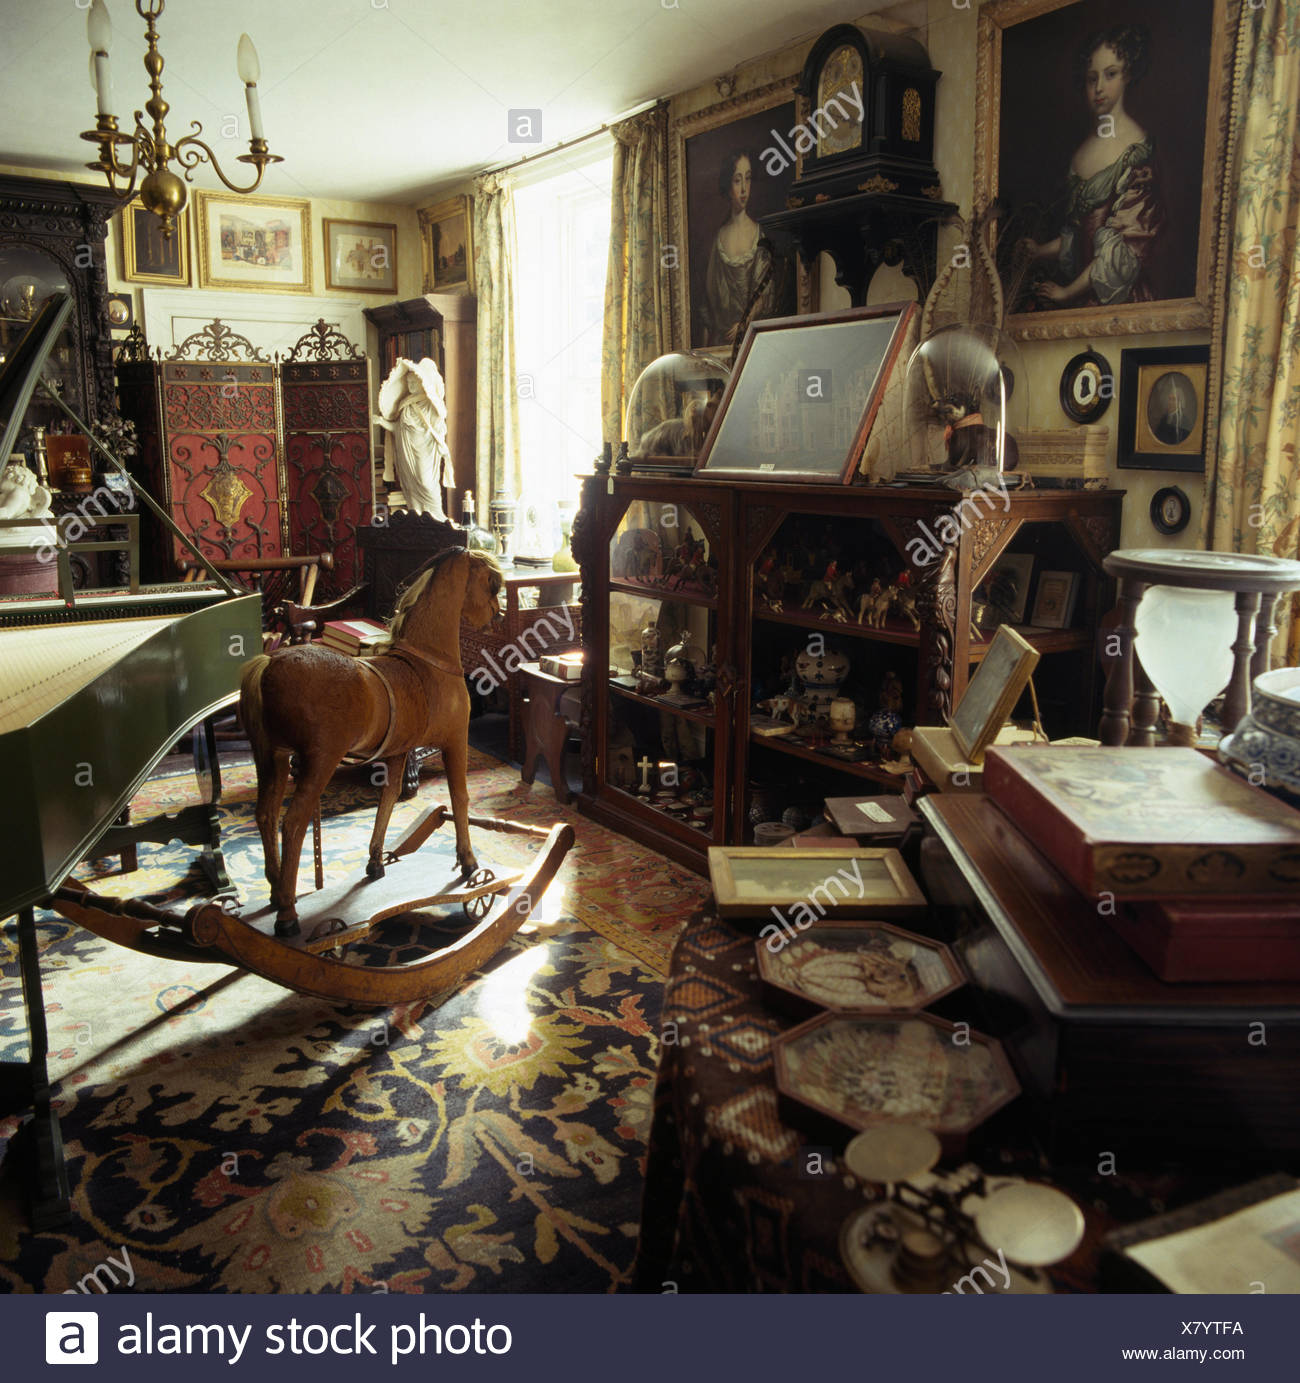 Rocking Horse In Study With Antique Furniture In Jacobean Rectory